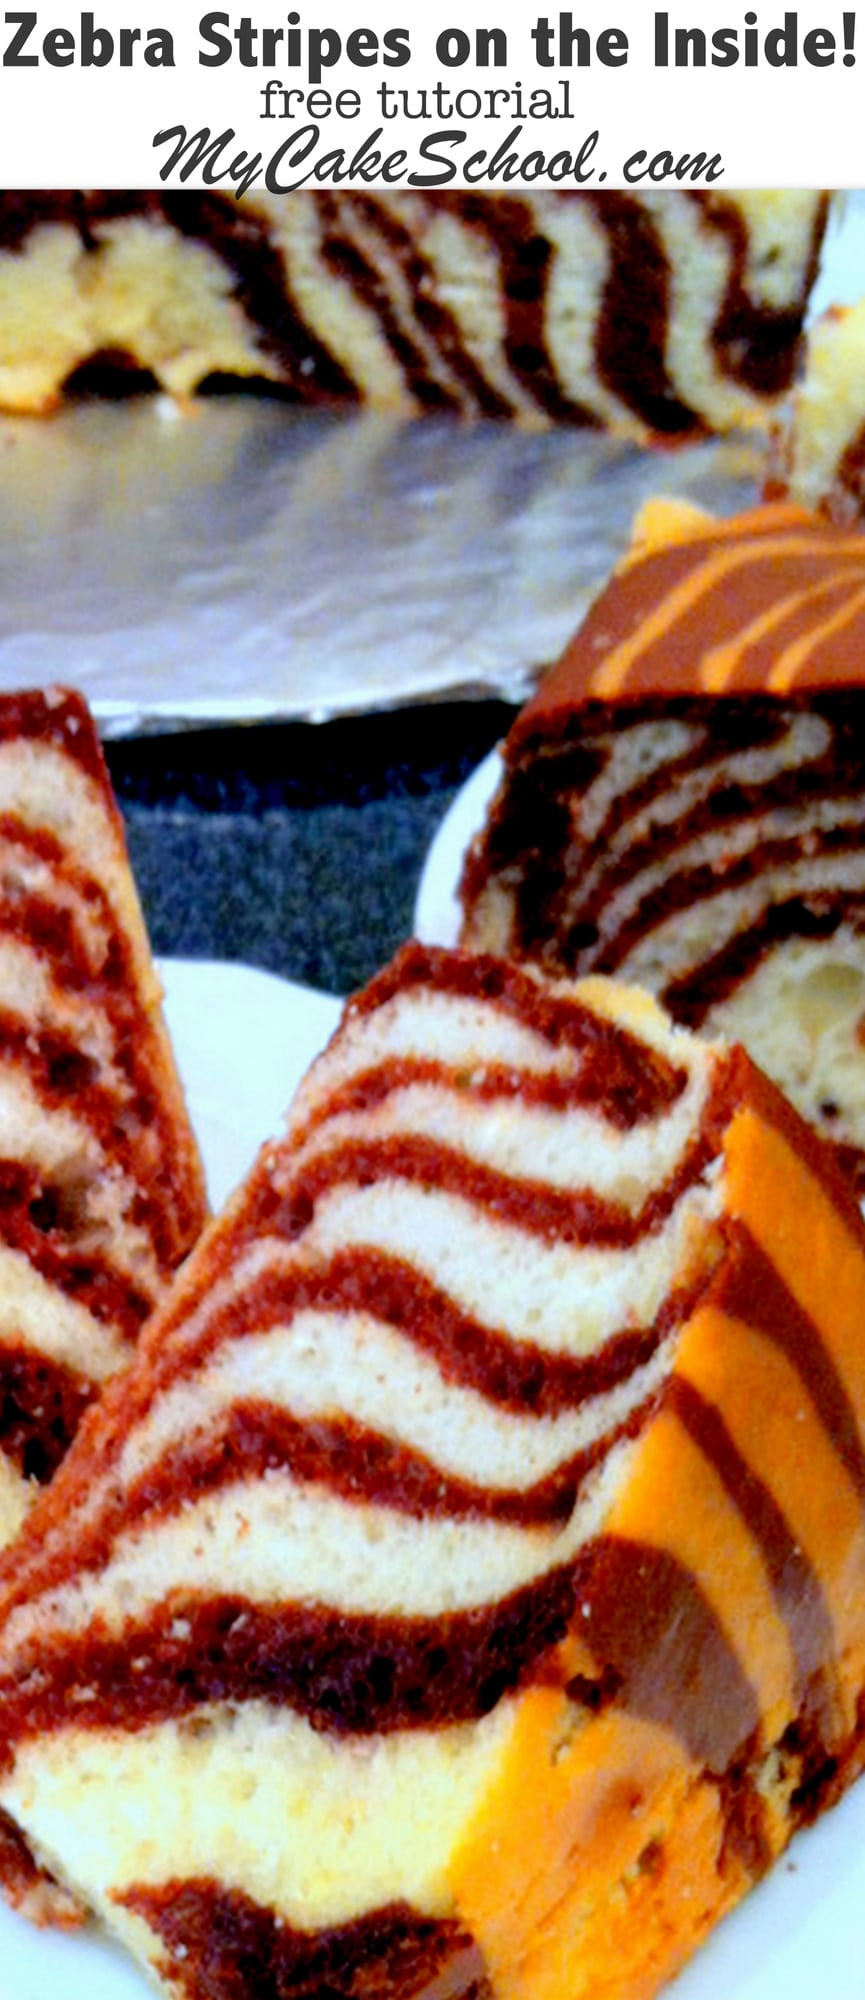 Zebra Cake Tutorial! Learn to create a zebra print pattern on the inside of your cakes in this simple cake tutorial by MyCakeSchool.com! A fun and fabulous spin on marble cake!